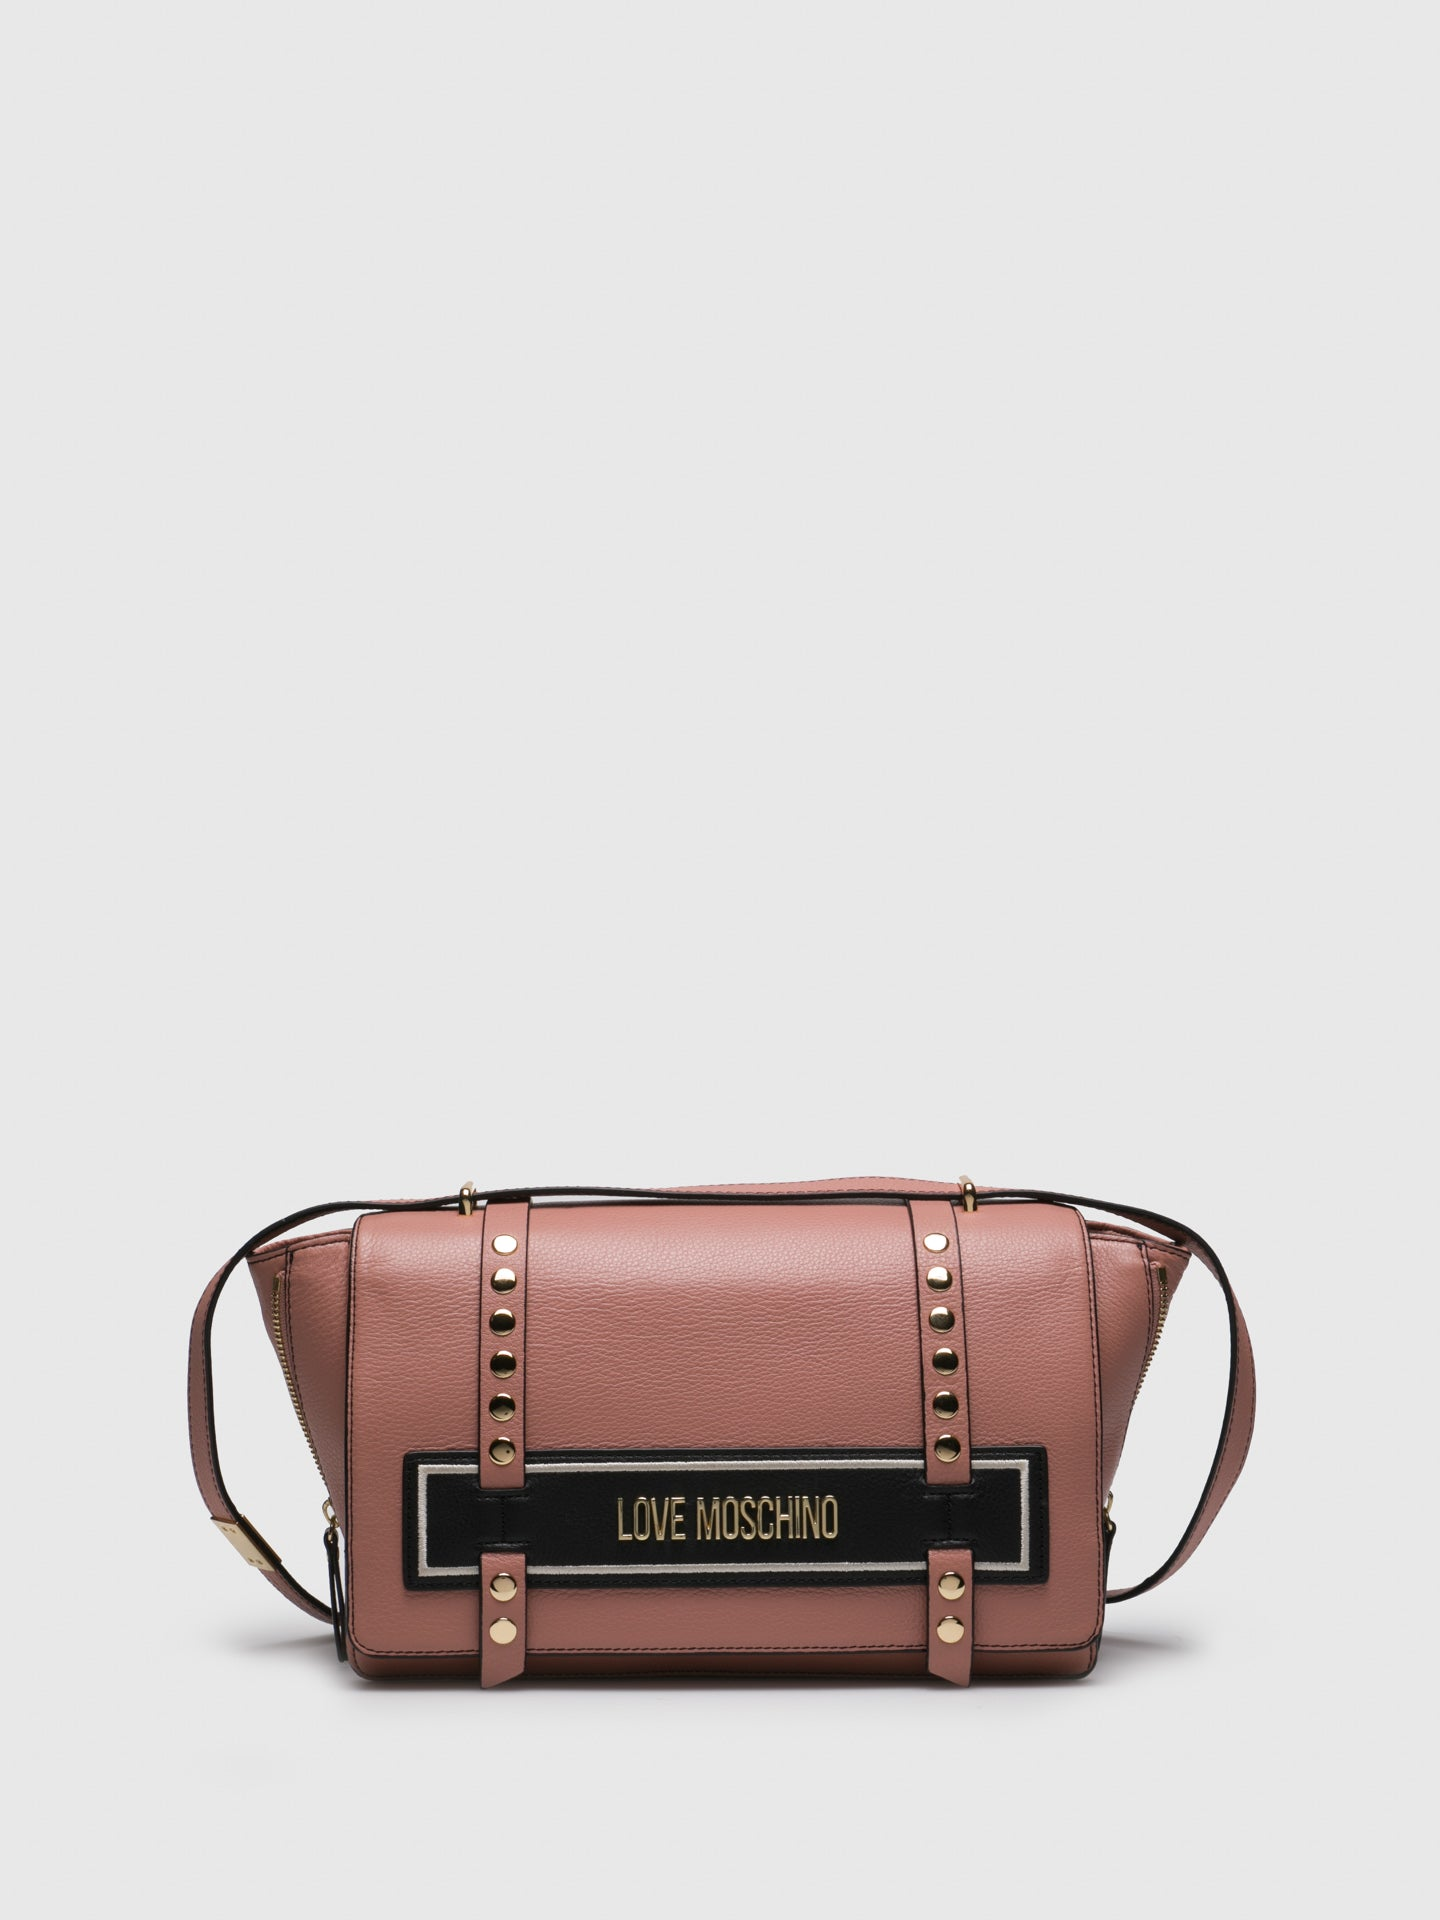 Love Moschino Pink Shoulder Bag